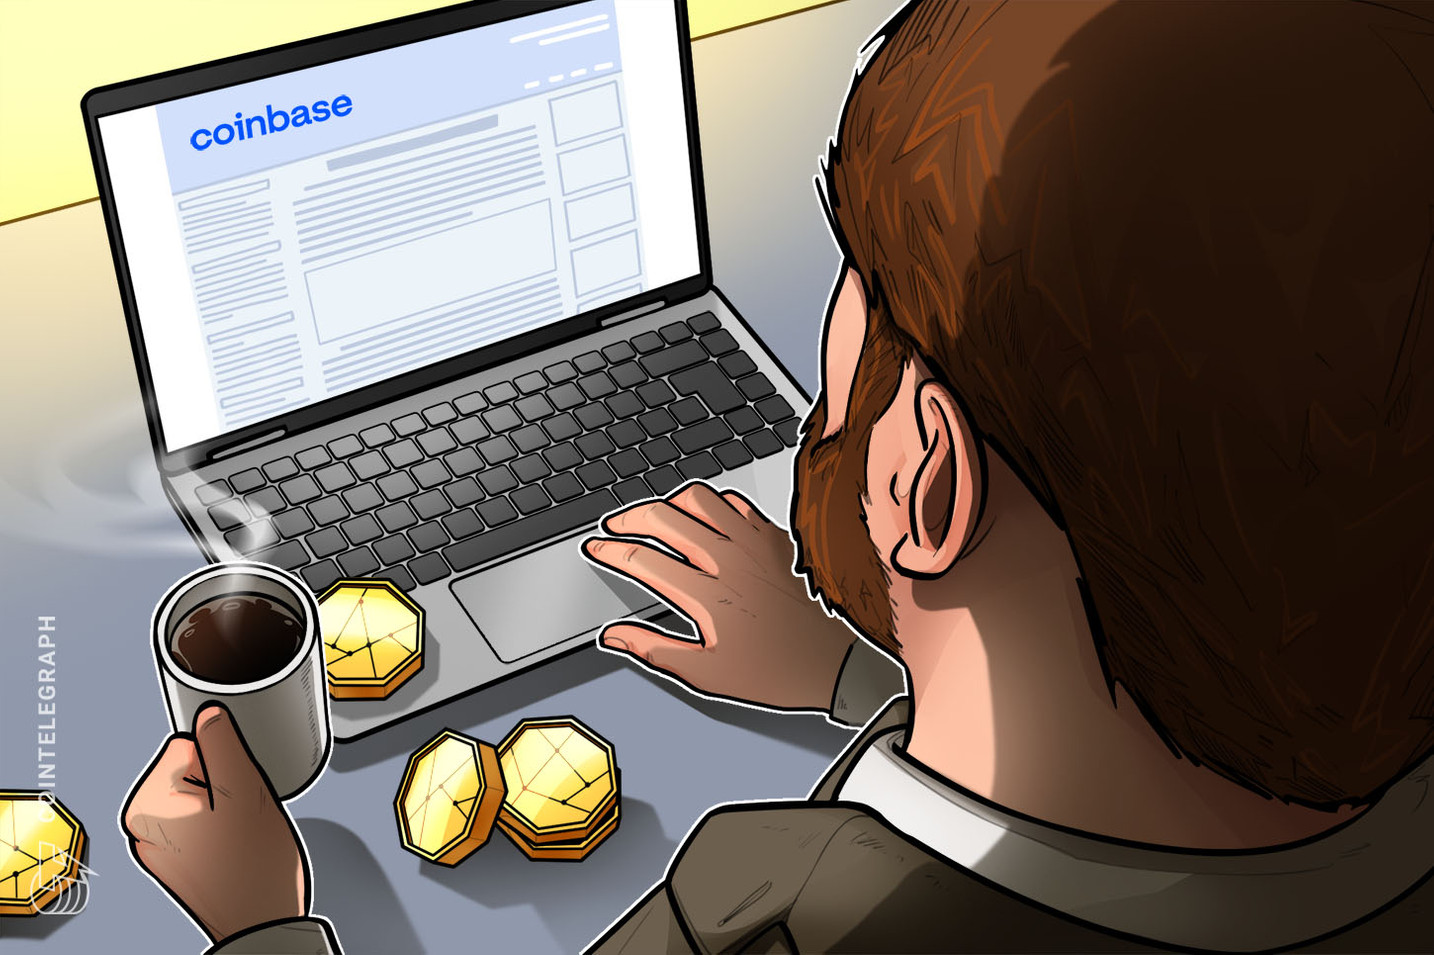 Almost 1.1M people have already signed up for Coinbase NFT waitlist